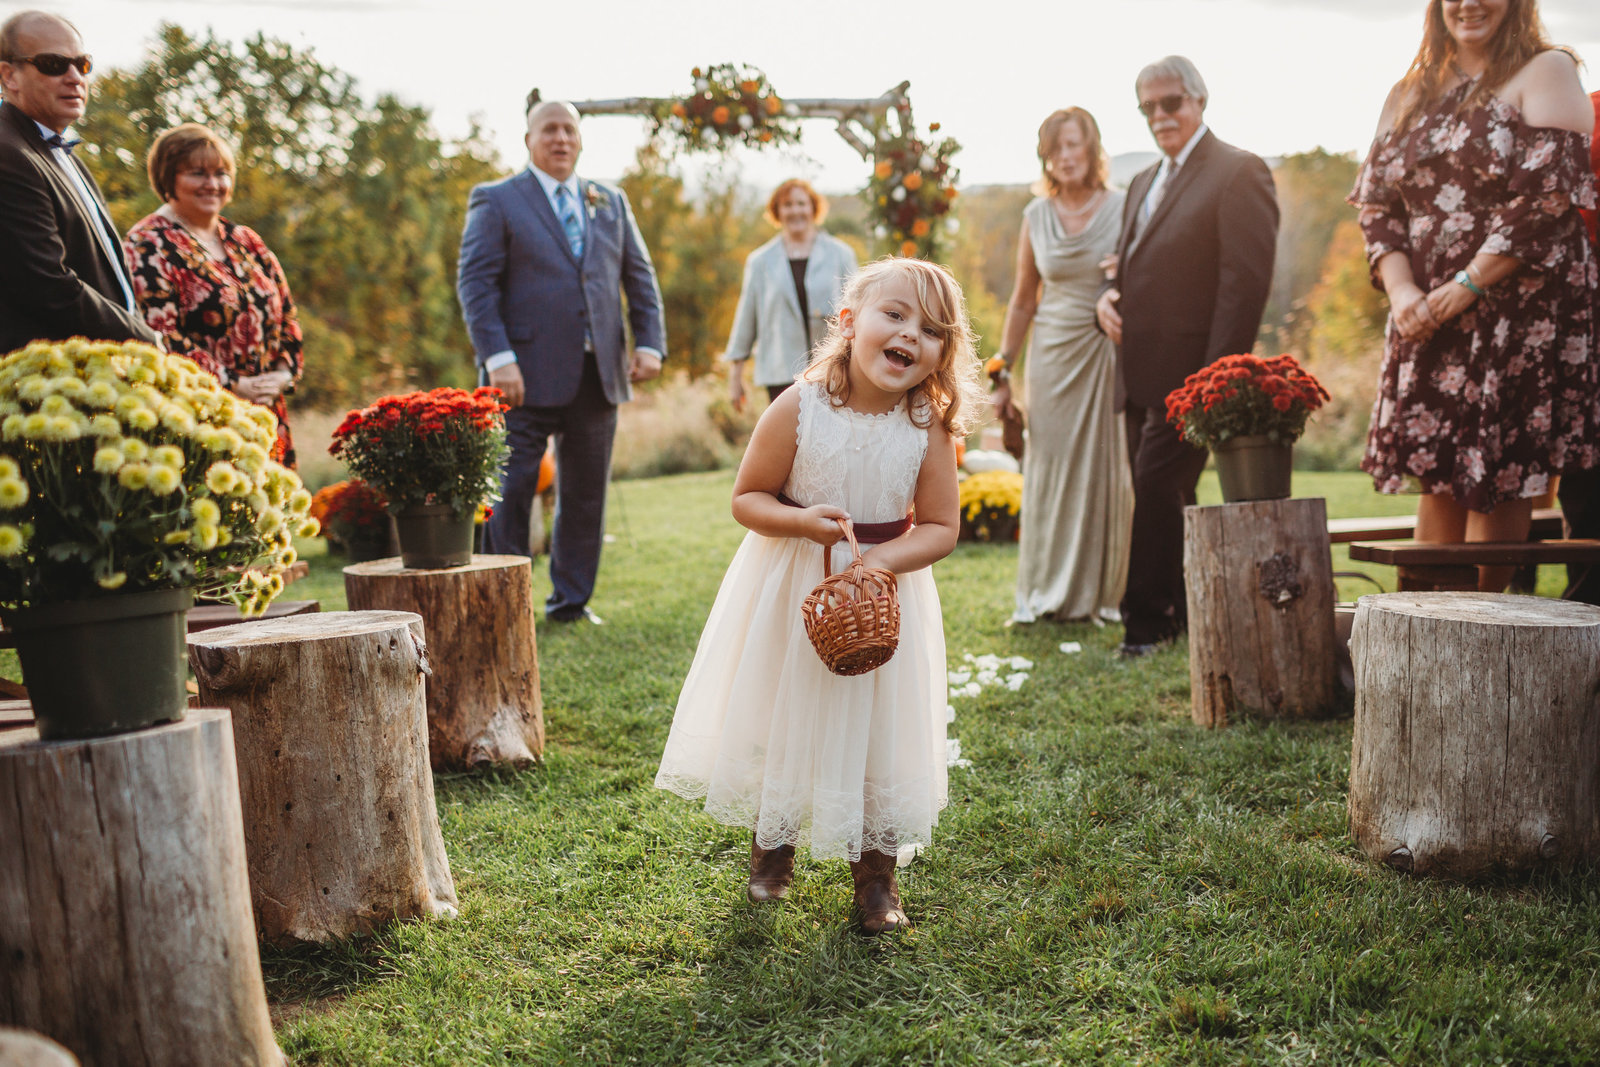 flower girl smiles and walks down outdoor aisle